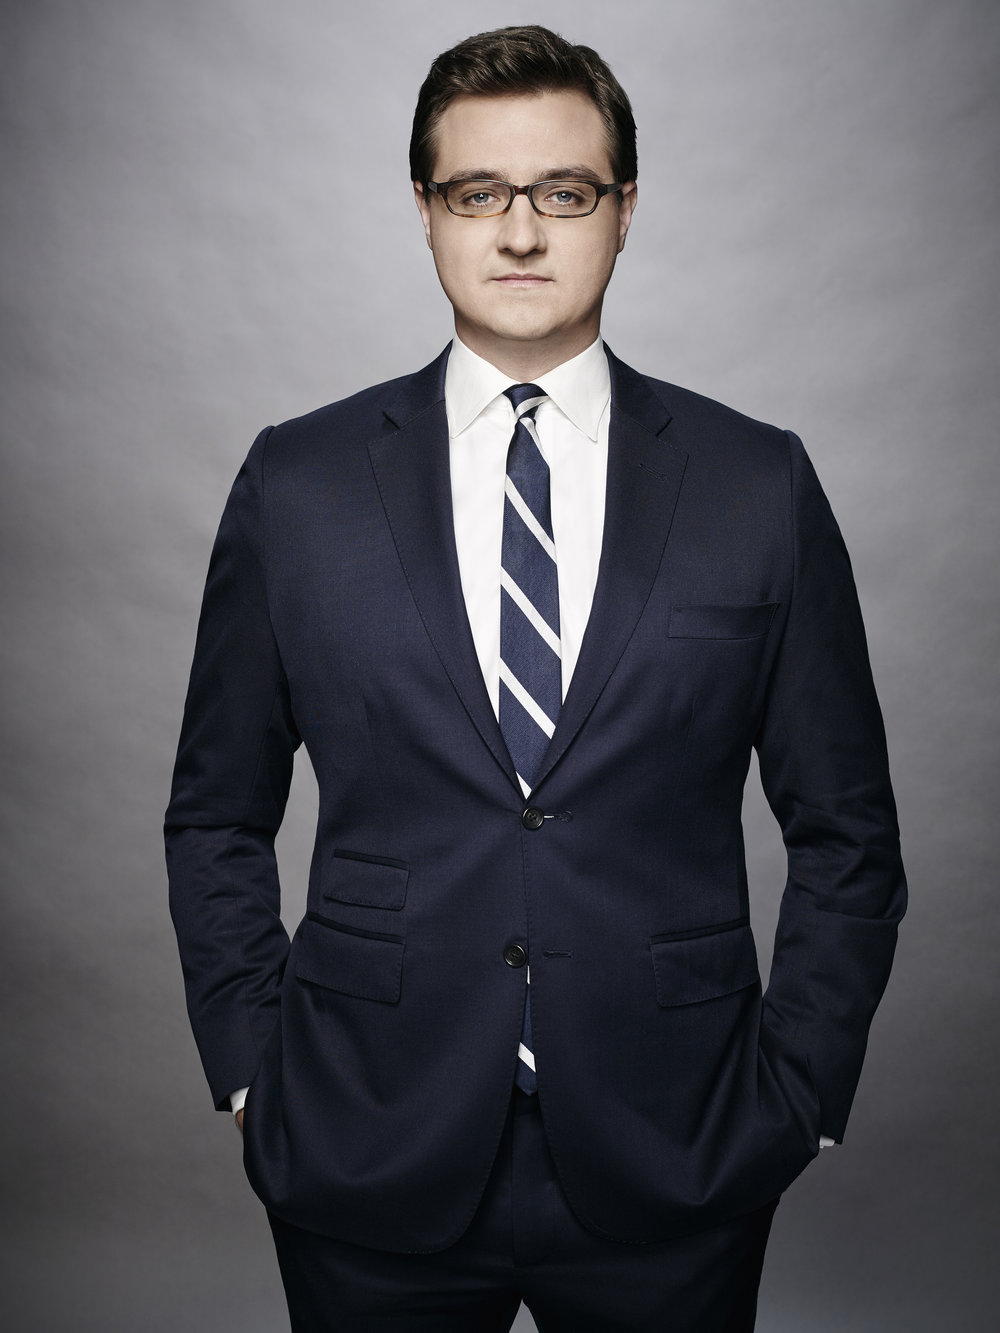 Chris Hayes1.jpg